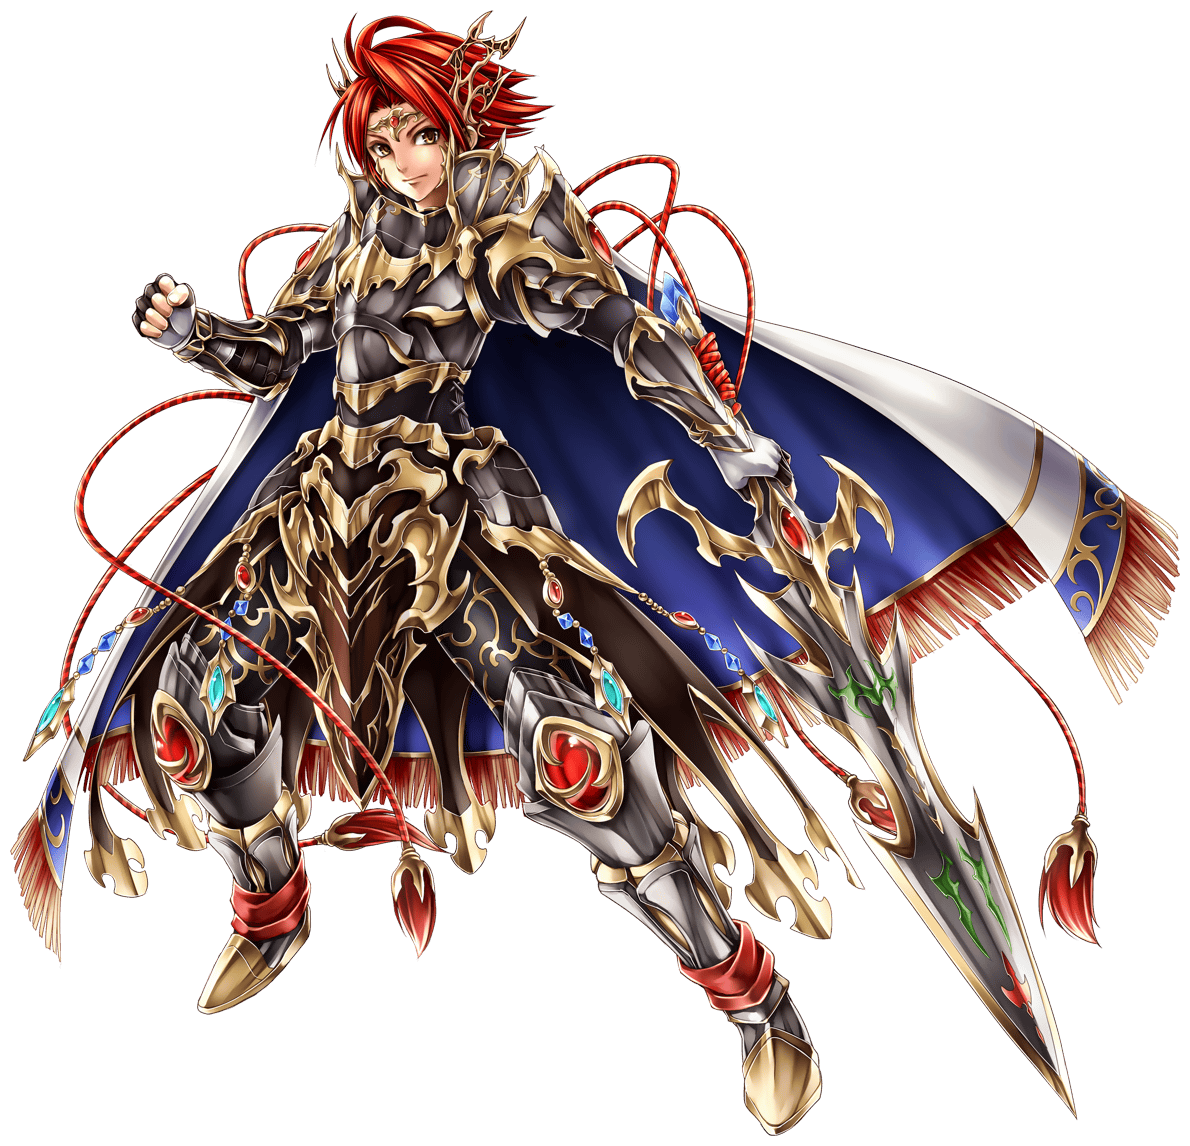 Beiorg Character Brave Frontier Wiki Fandom Powered - Www